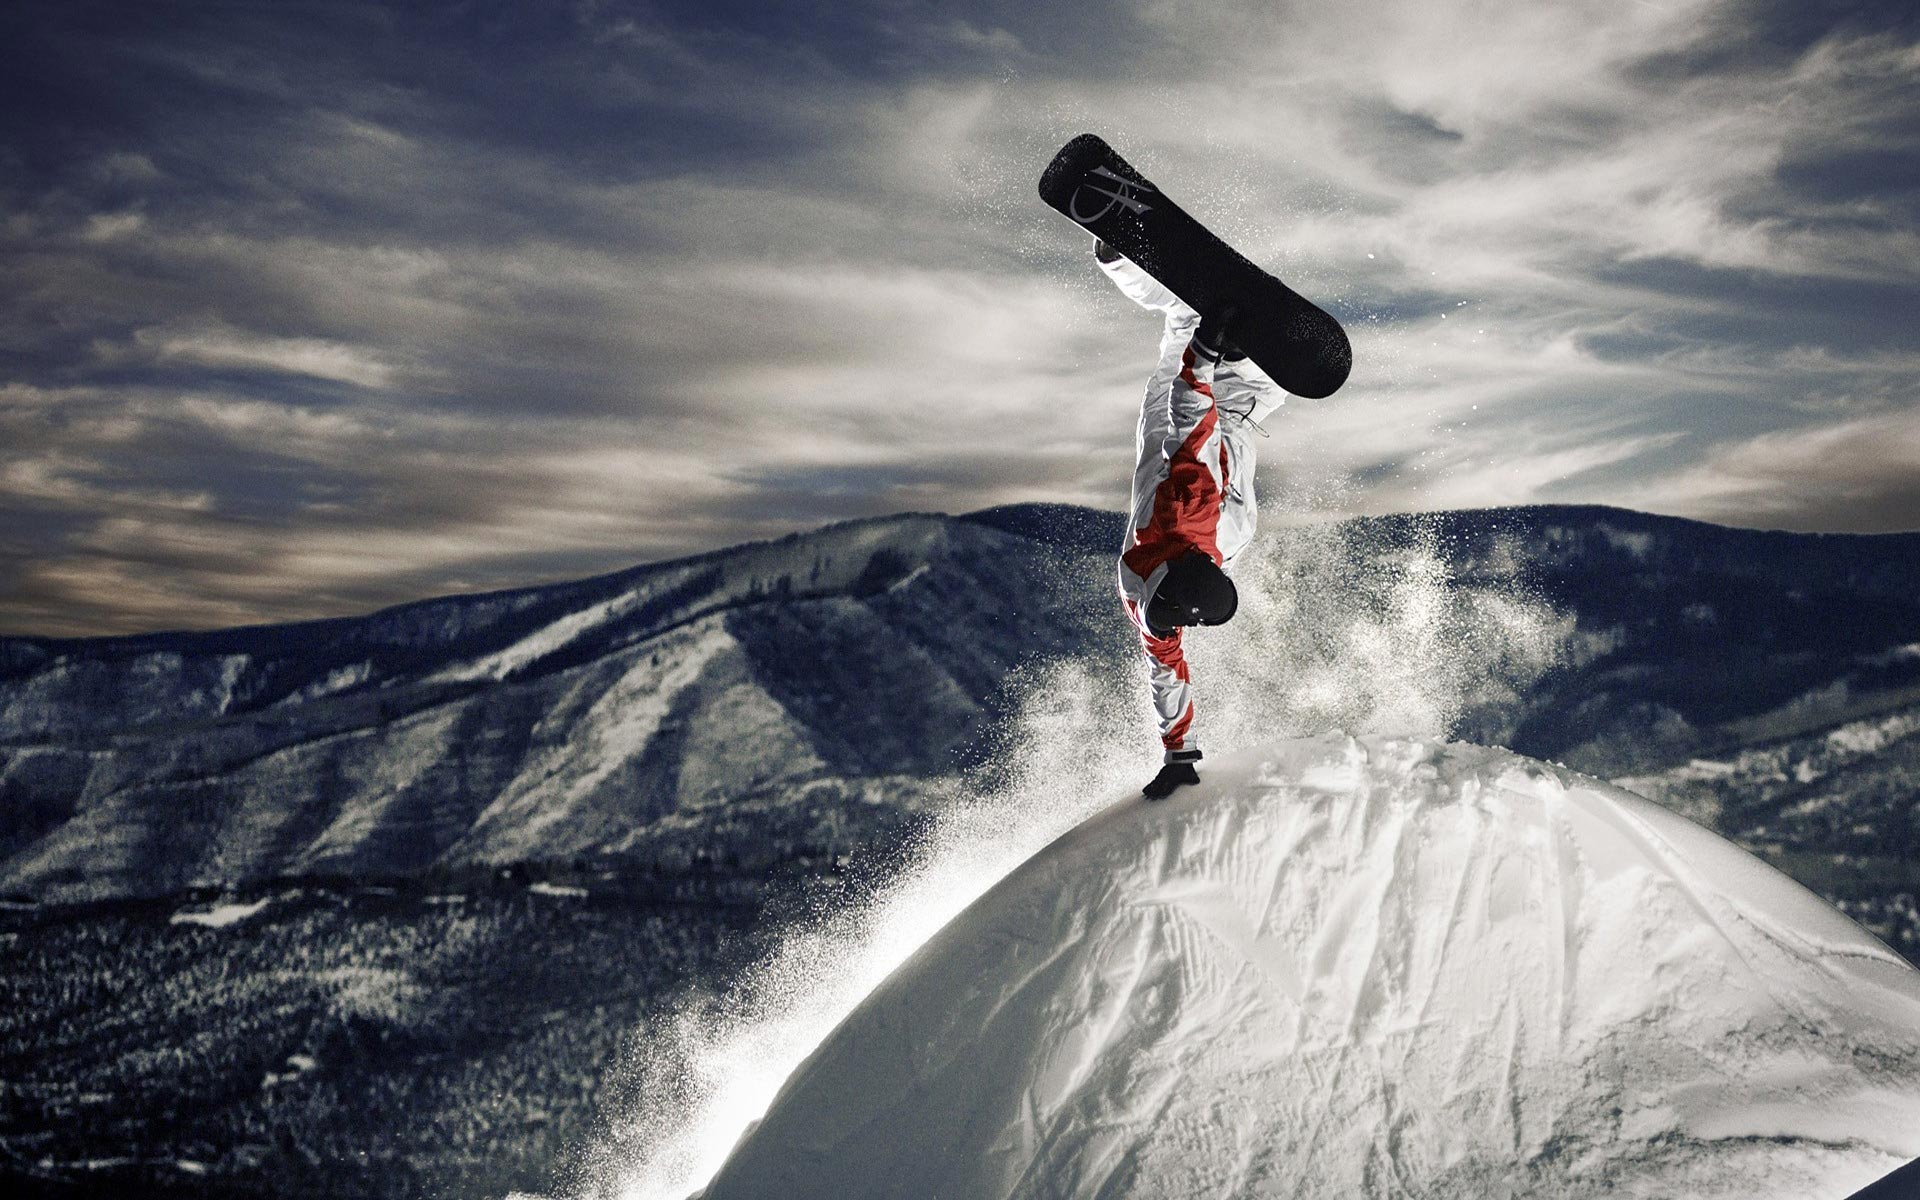 snowboard_jump_4_hd_widescreen_wallpapers_1920x1200.jpg Snowboarding 1920x1200